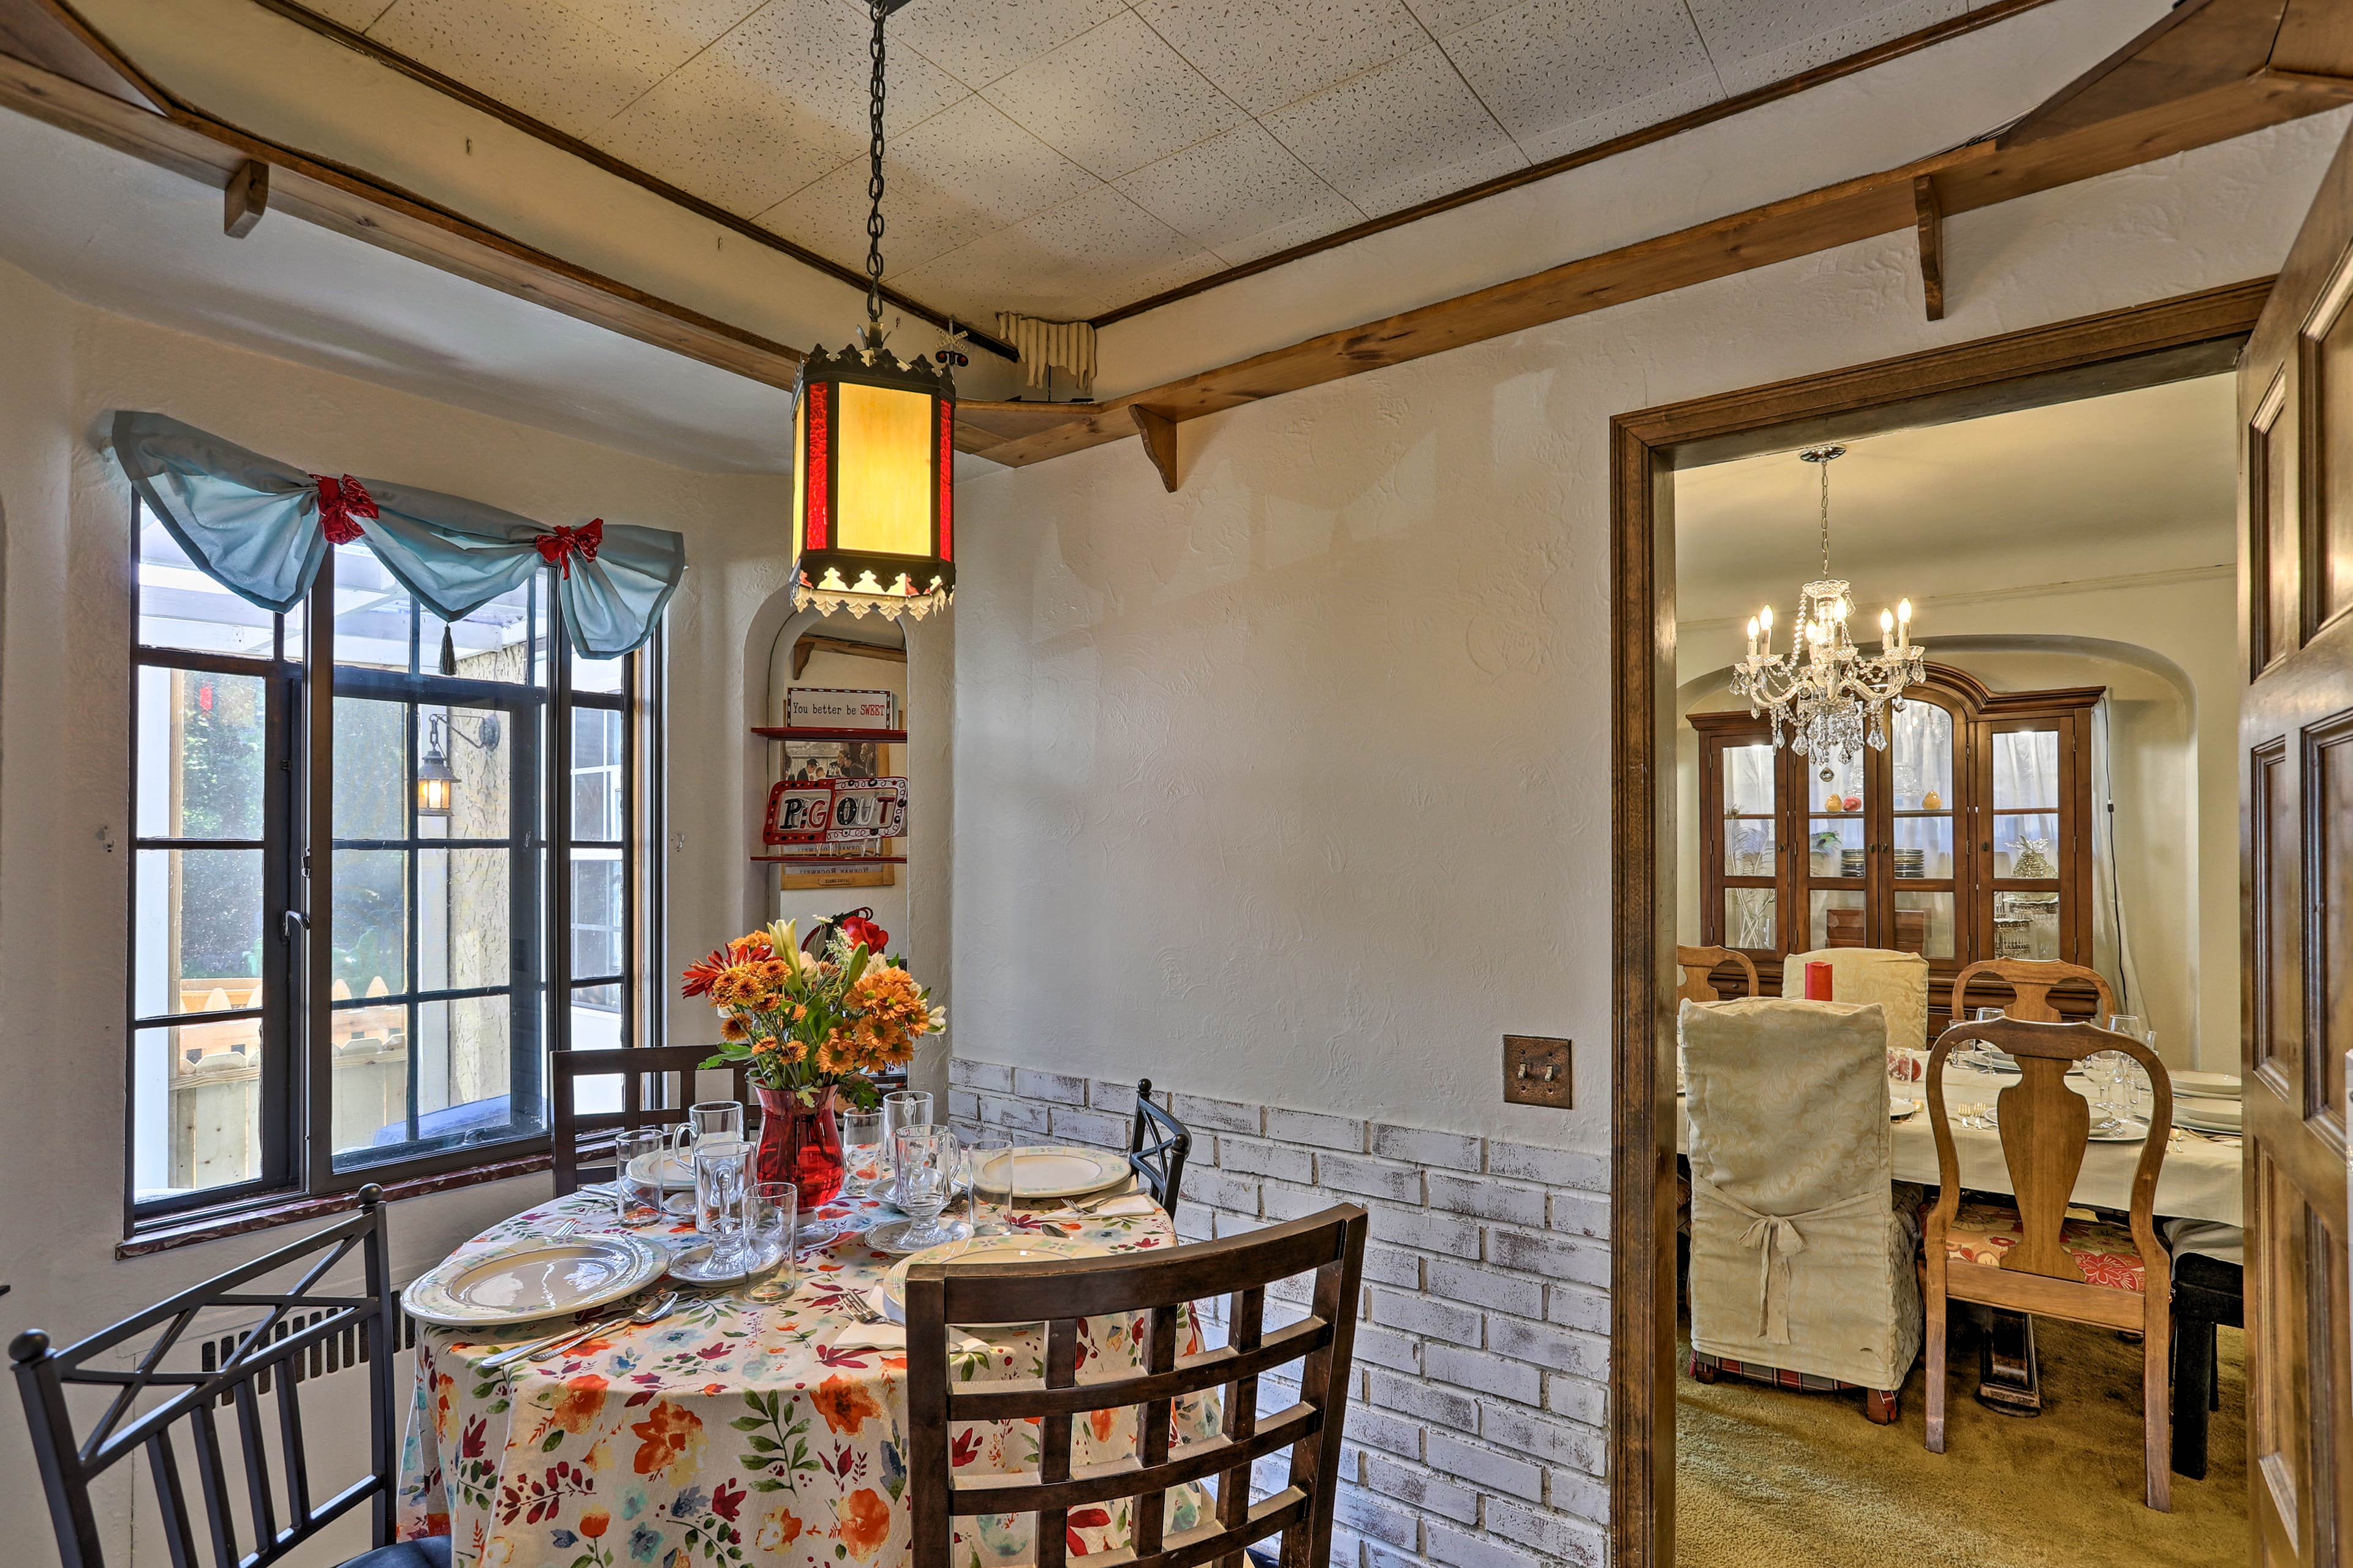 The kids can sit at this little breakfast nook.